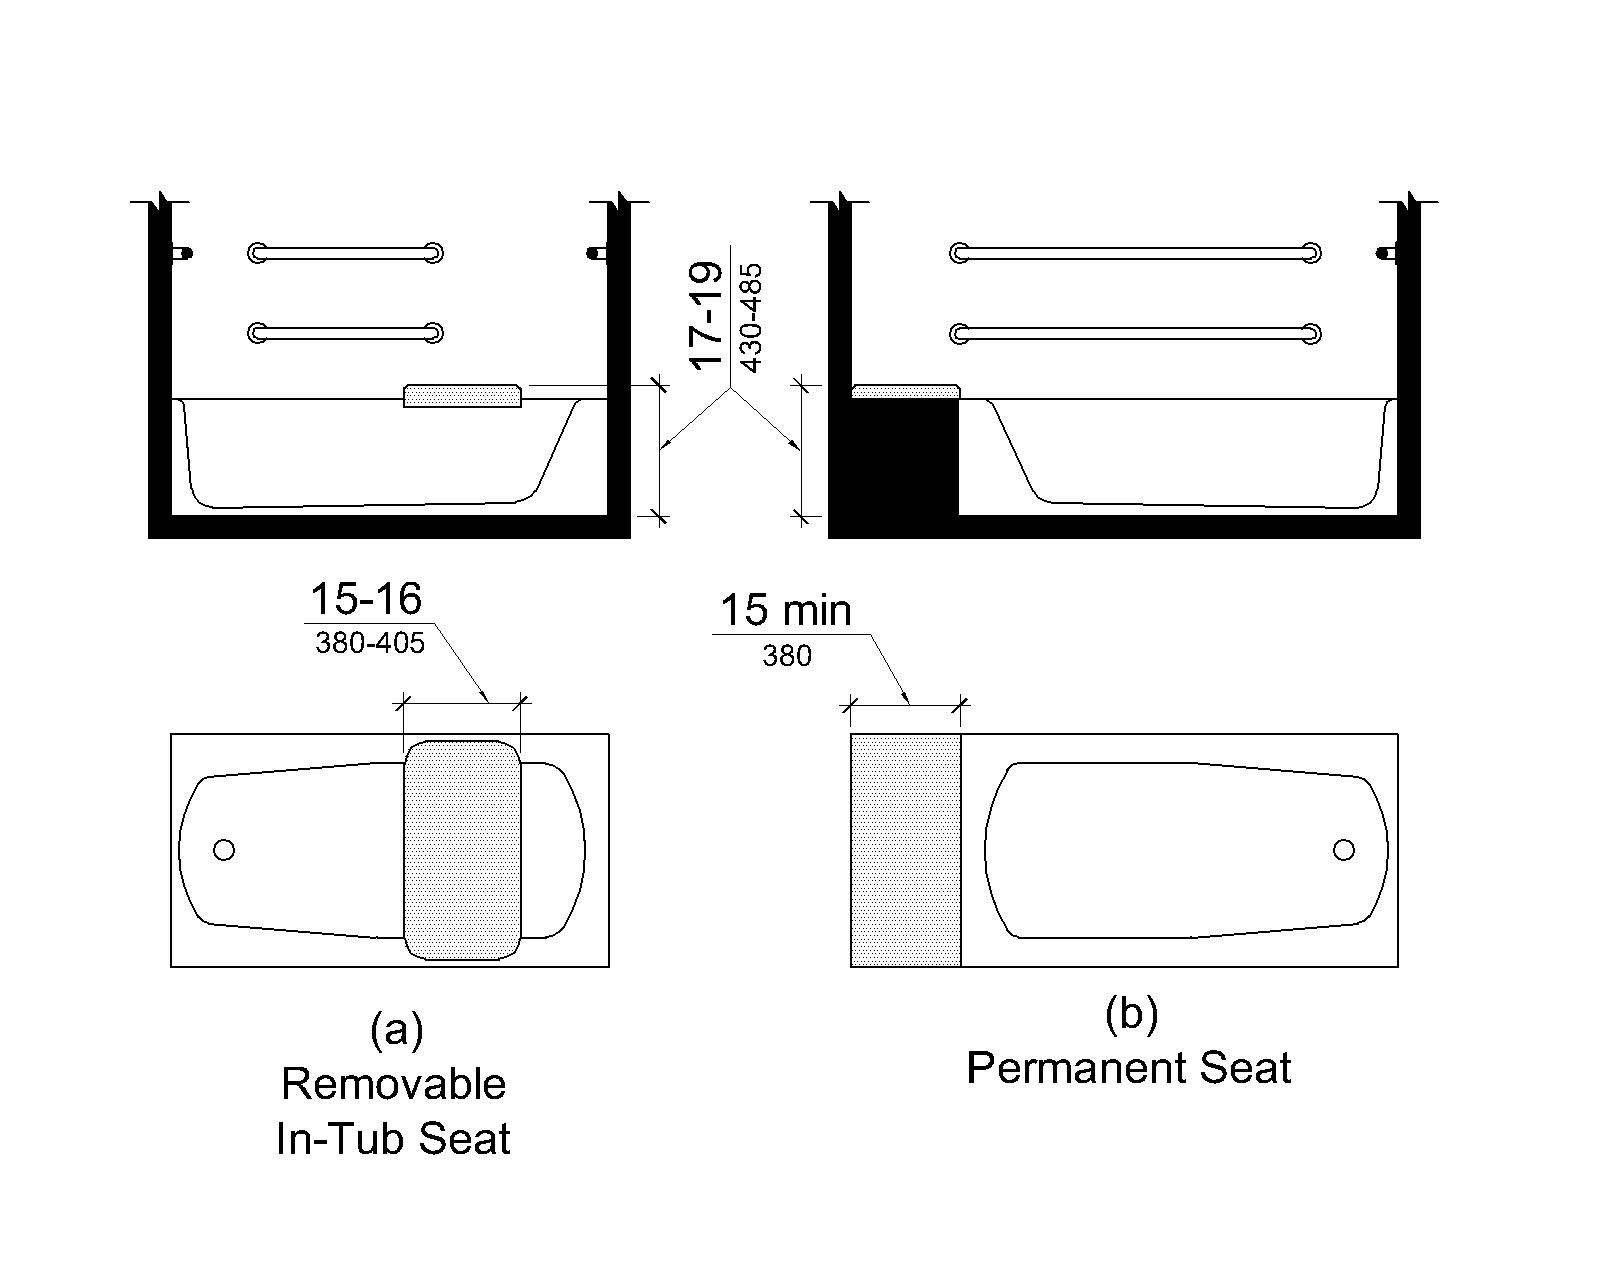 Figure (a) shows a removable in-tub seat in elevation and plan views that is 15 to 16 inches (380 to 405 mm) deep and 17 to 19 inches (430 to 485 mm) above the deck surface measured to the top of the seat. Figure (b) shows permanent tub seat in elevation and plan views that is 15 inches (380 mm) minimum deep and 17 to 19 inches (430 to 485 mm) above the deck surface measured to the top of the seat.